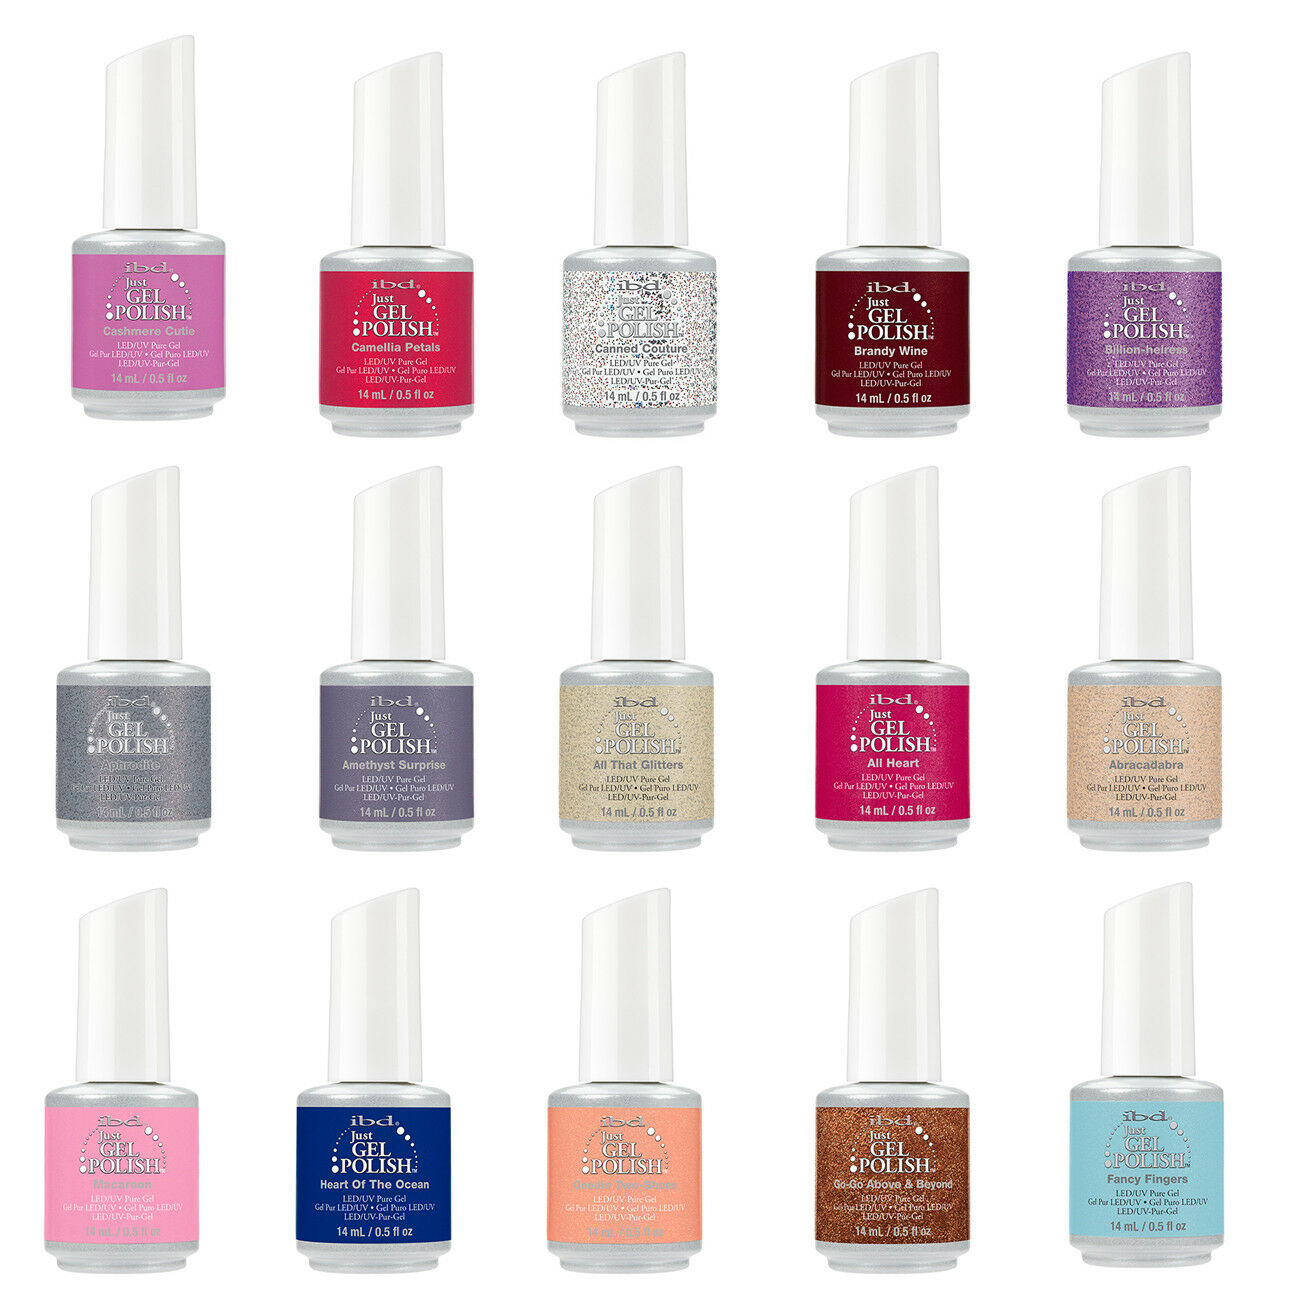 IBD Just Gel UV/LED Gel Polish 0.5oz. Buy 1 Get 1 at 50% Off